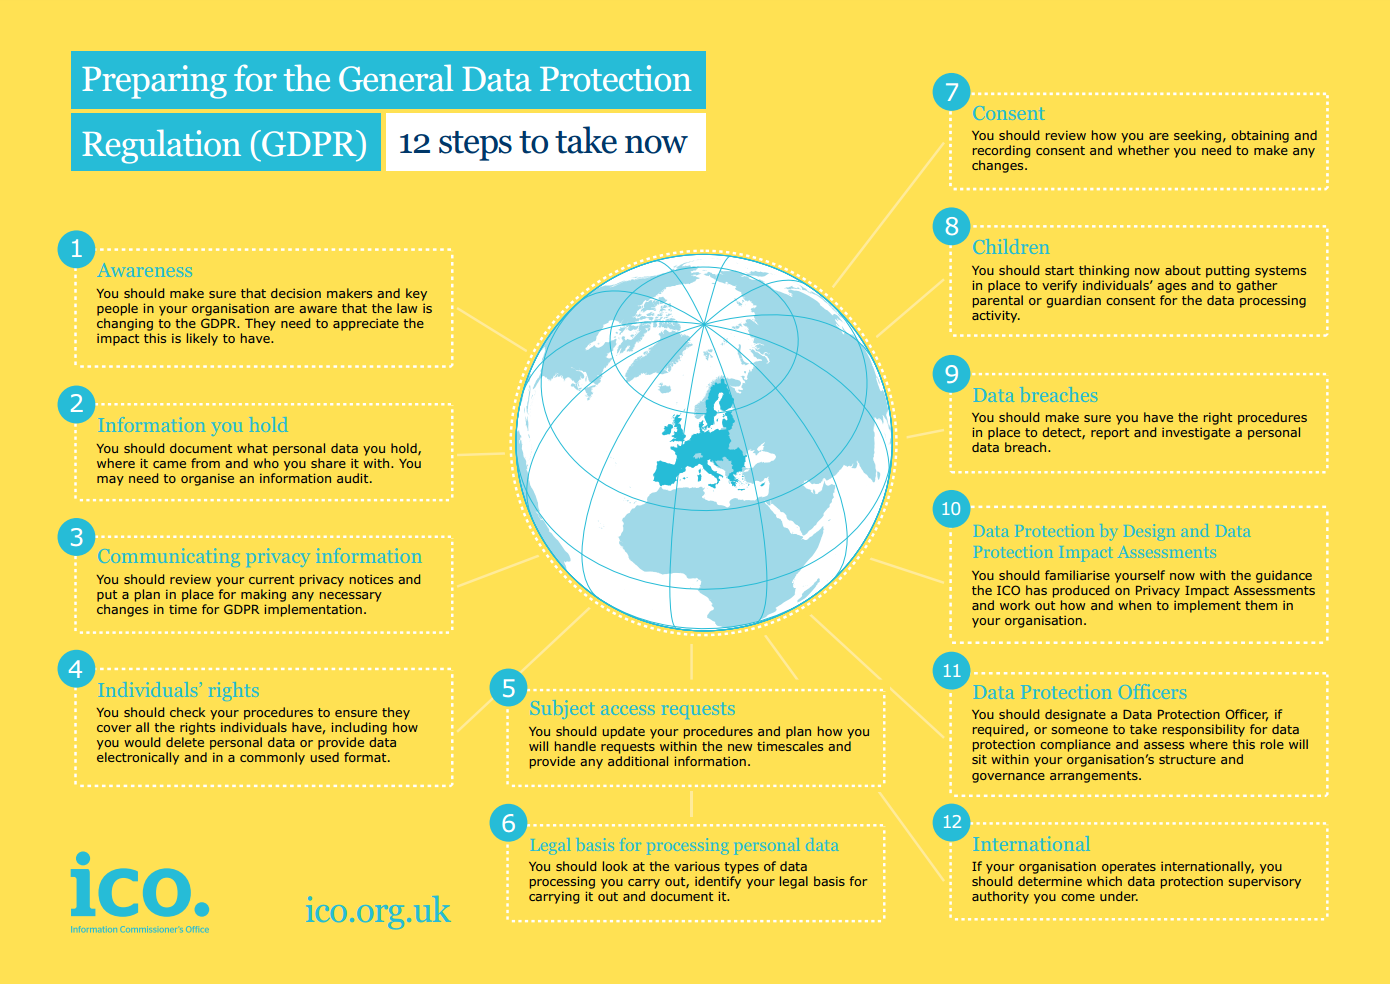 Are you ready for data protection reform?